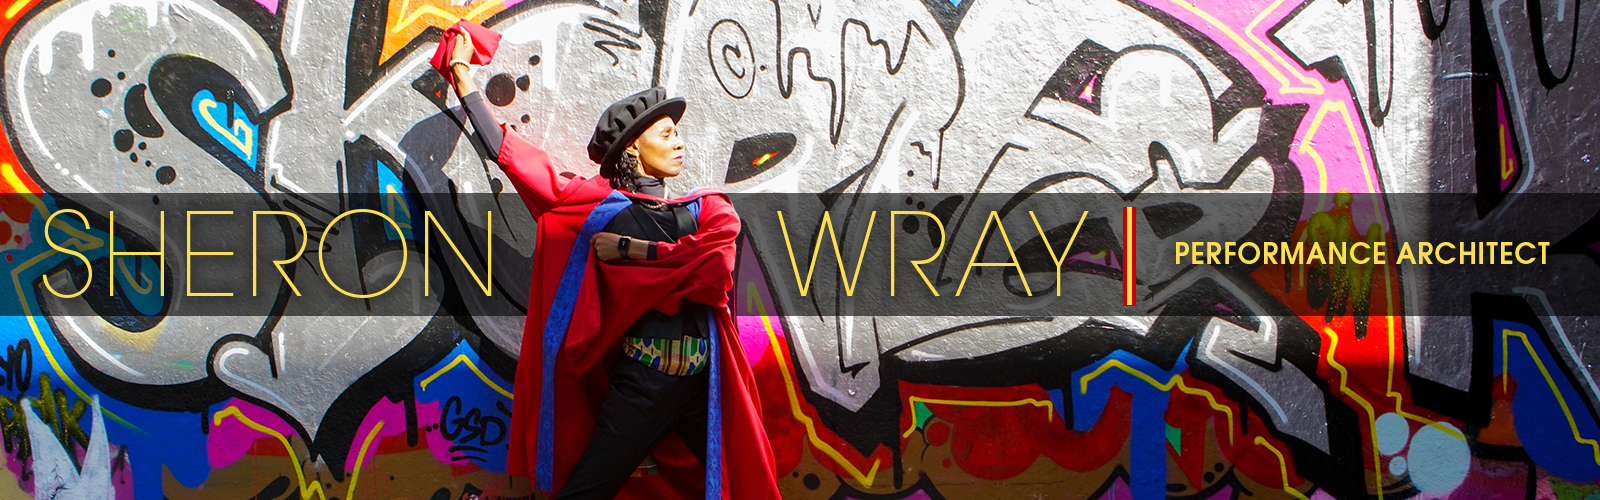 Sheron Wray: Performance Architect header with the artist posed in her doctoral robes in front of a graffiti filled wall.